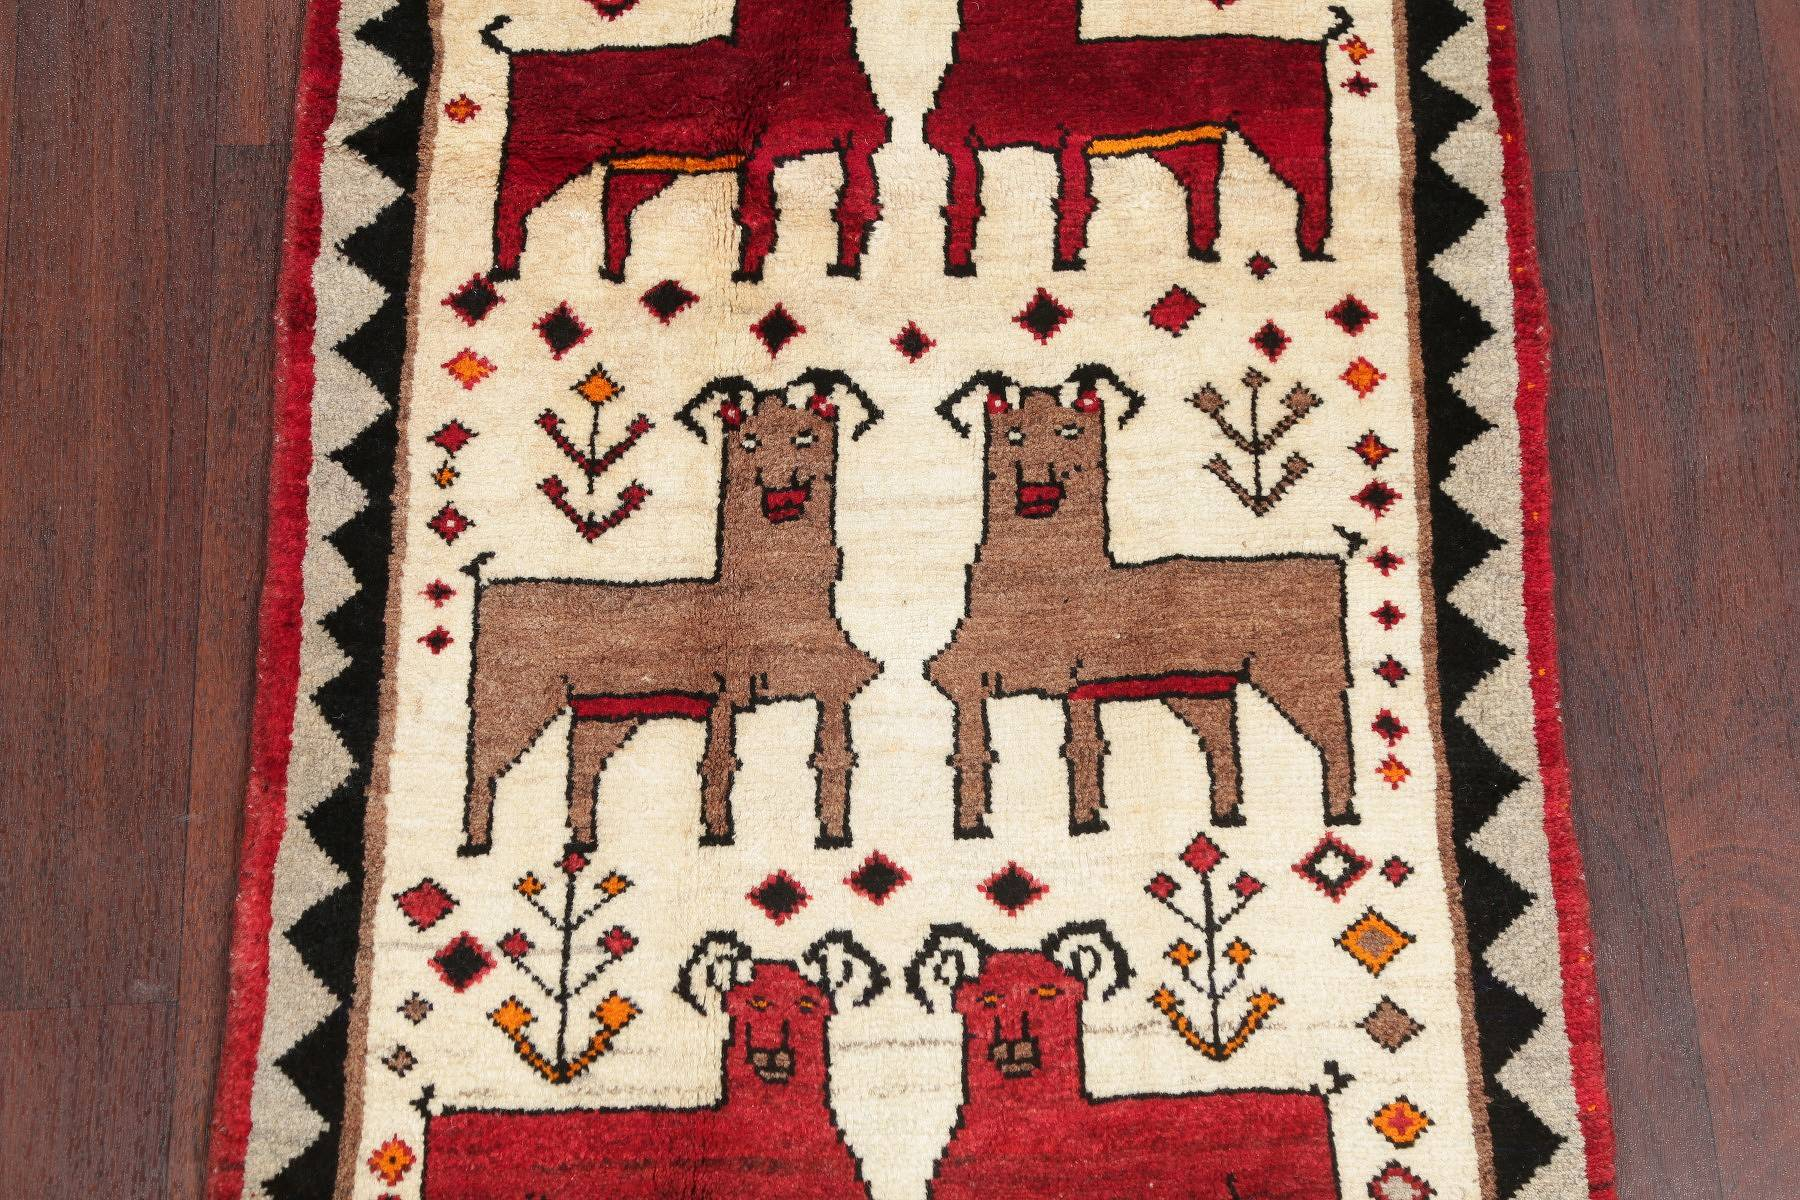 Animal Pictorial Gabbeh Qashqai Persian Hand-Knotted 3x4 Wool Rug